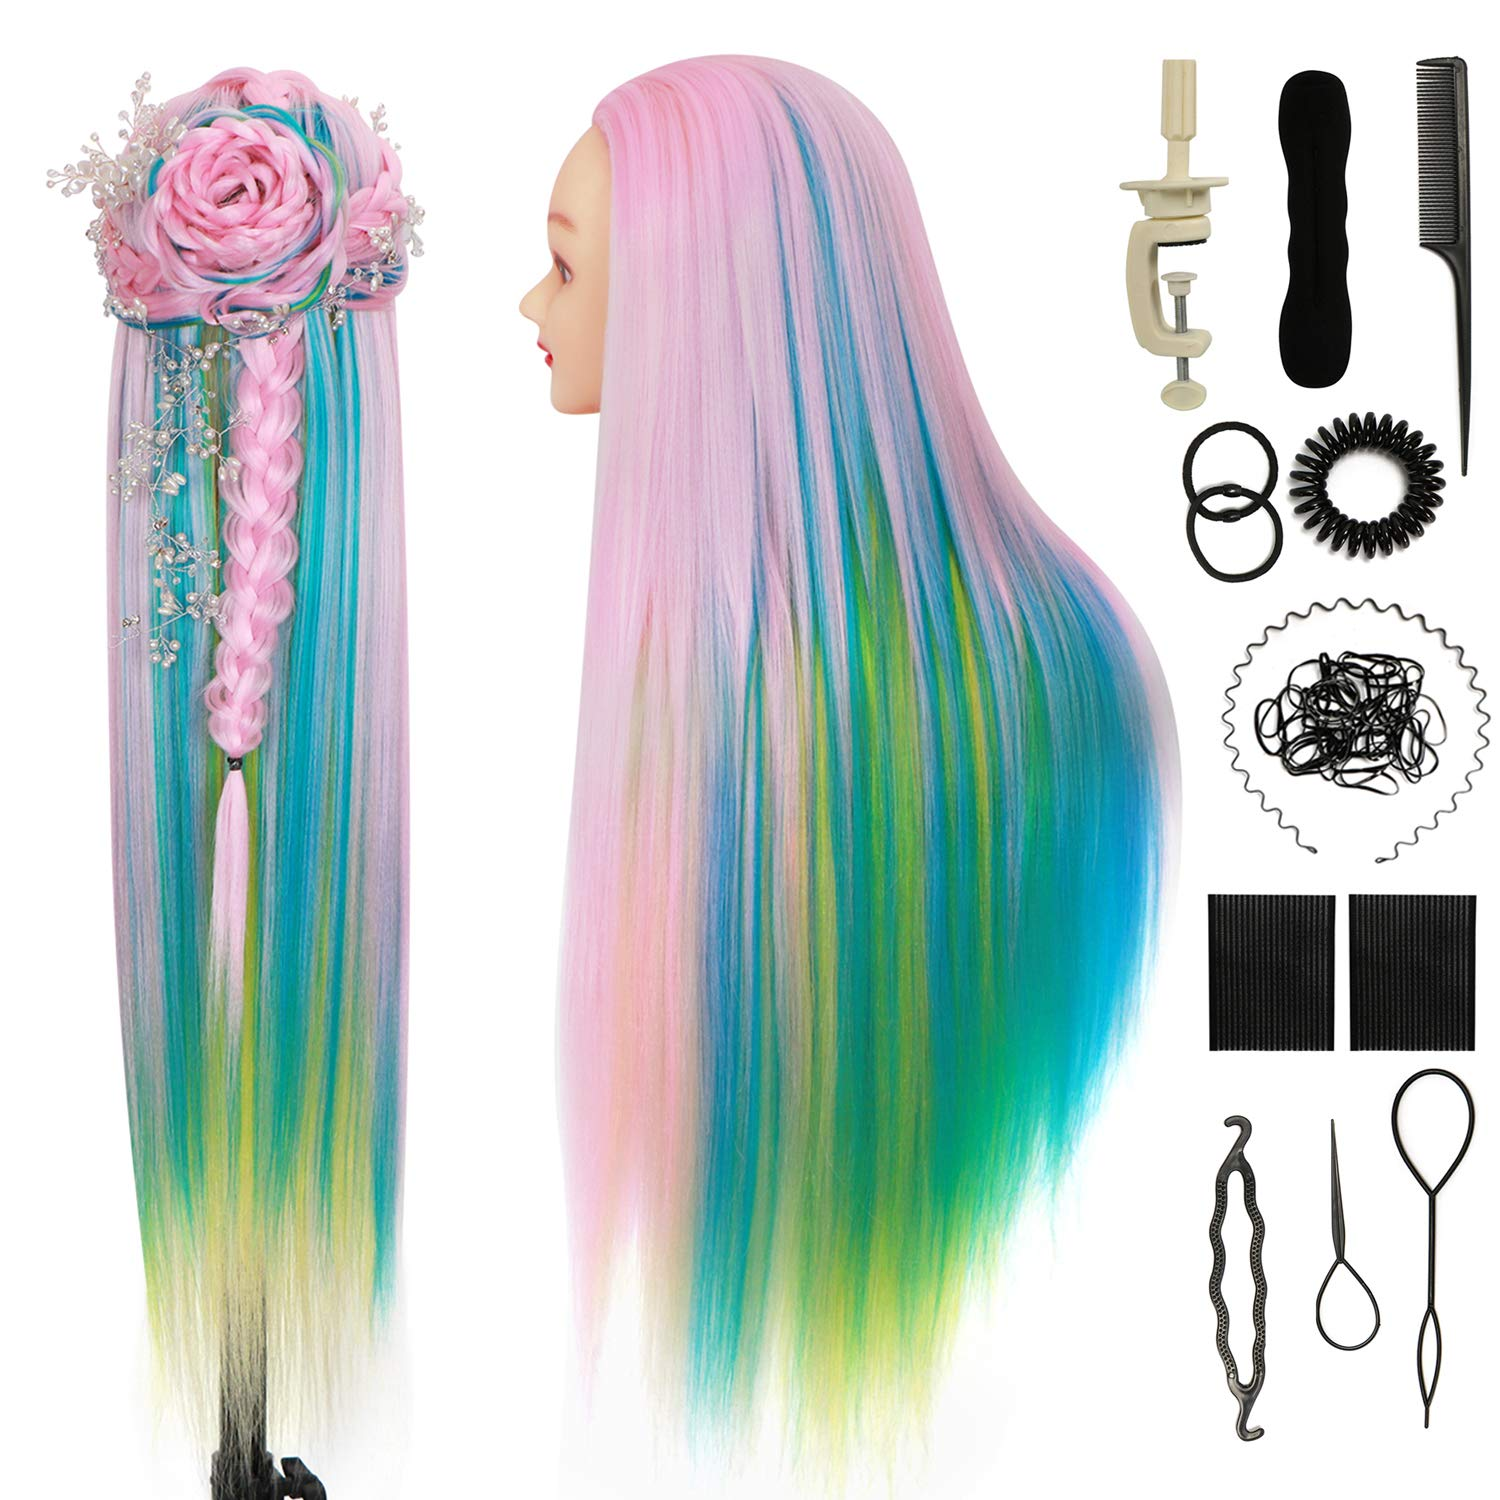 Cosmetology Mannequin Head With Hair Styling Head 30 Inches Doll Head For Hair Styling 100 Synthetic Fiber Hair Manikin Head Orguja Hairdresser Head To Practice Braiding With Clamp And Diy Braid Set Beauty Amazon Com